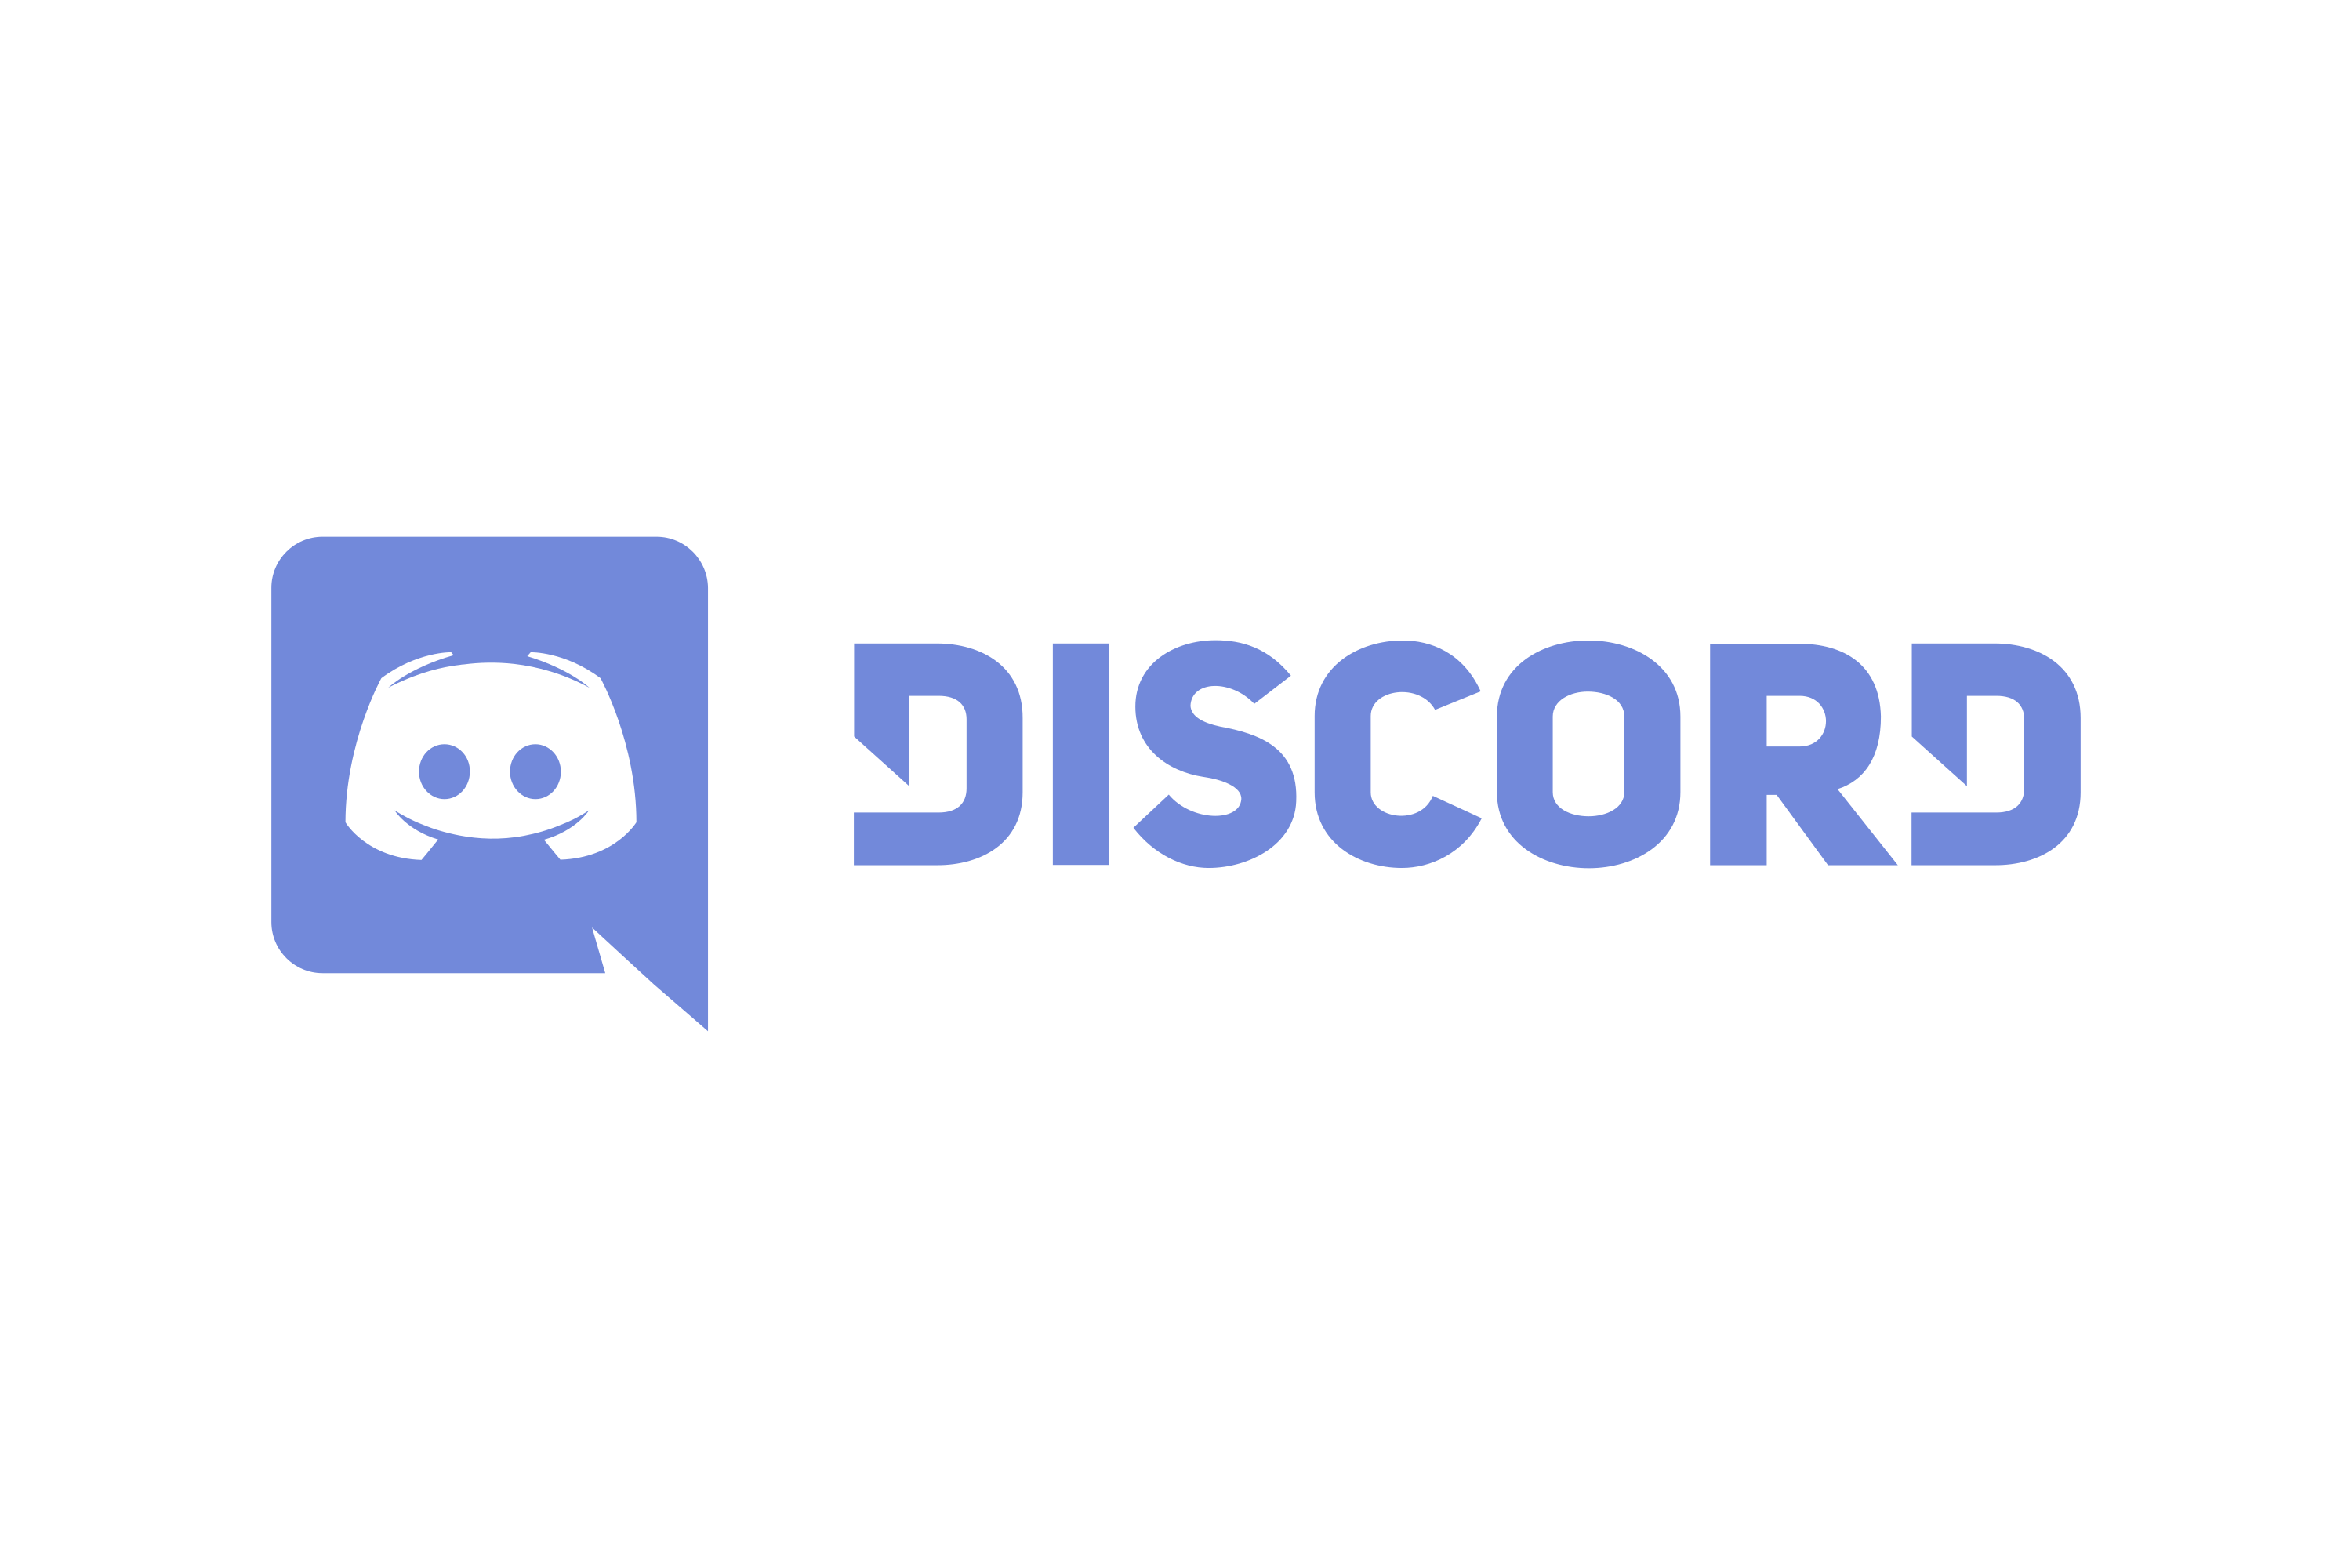 Download Discord Logo in SVG Vector or PNG File Format - Logo.wine